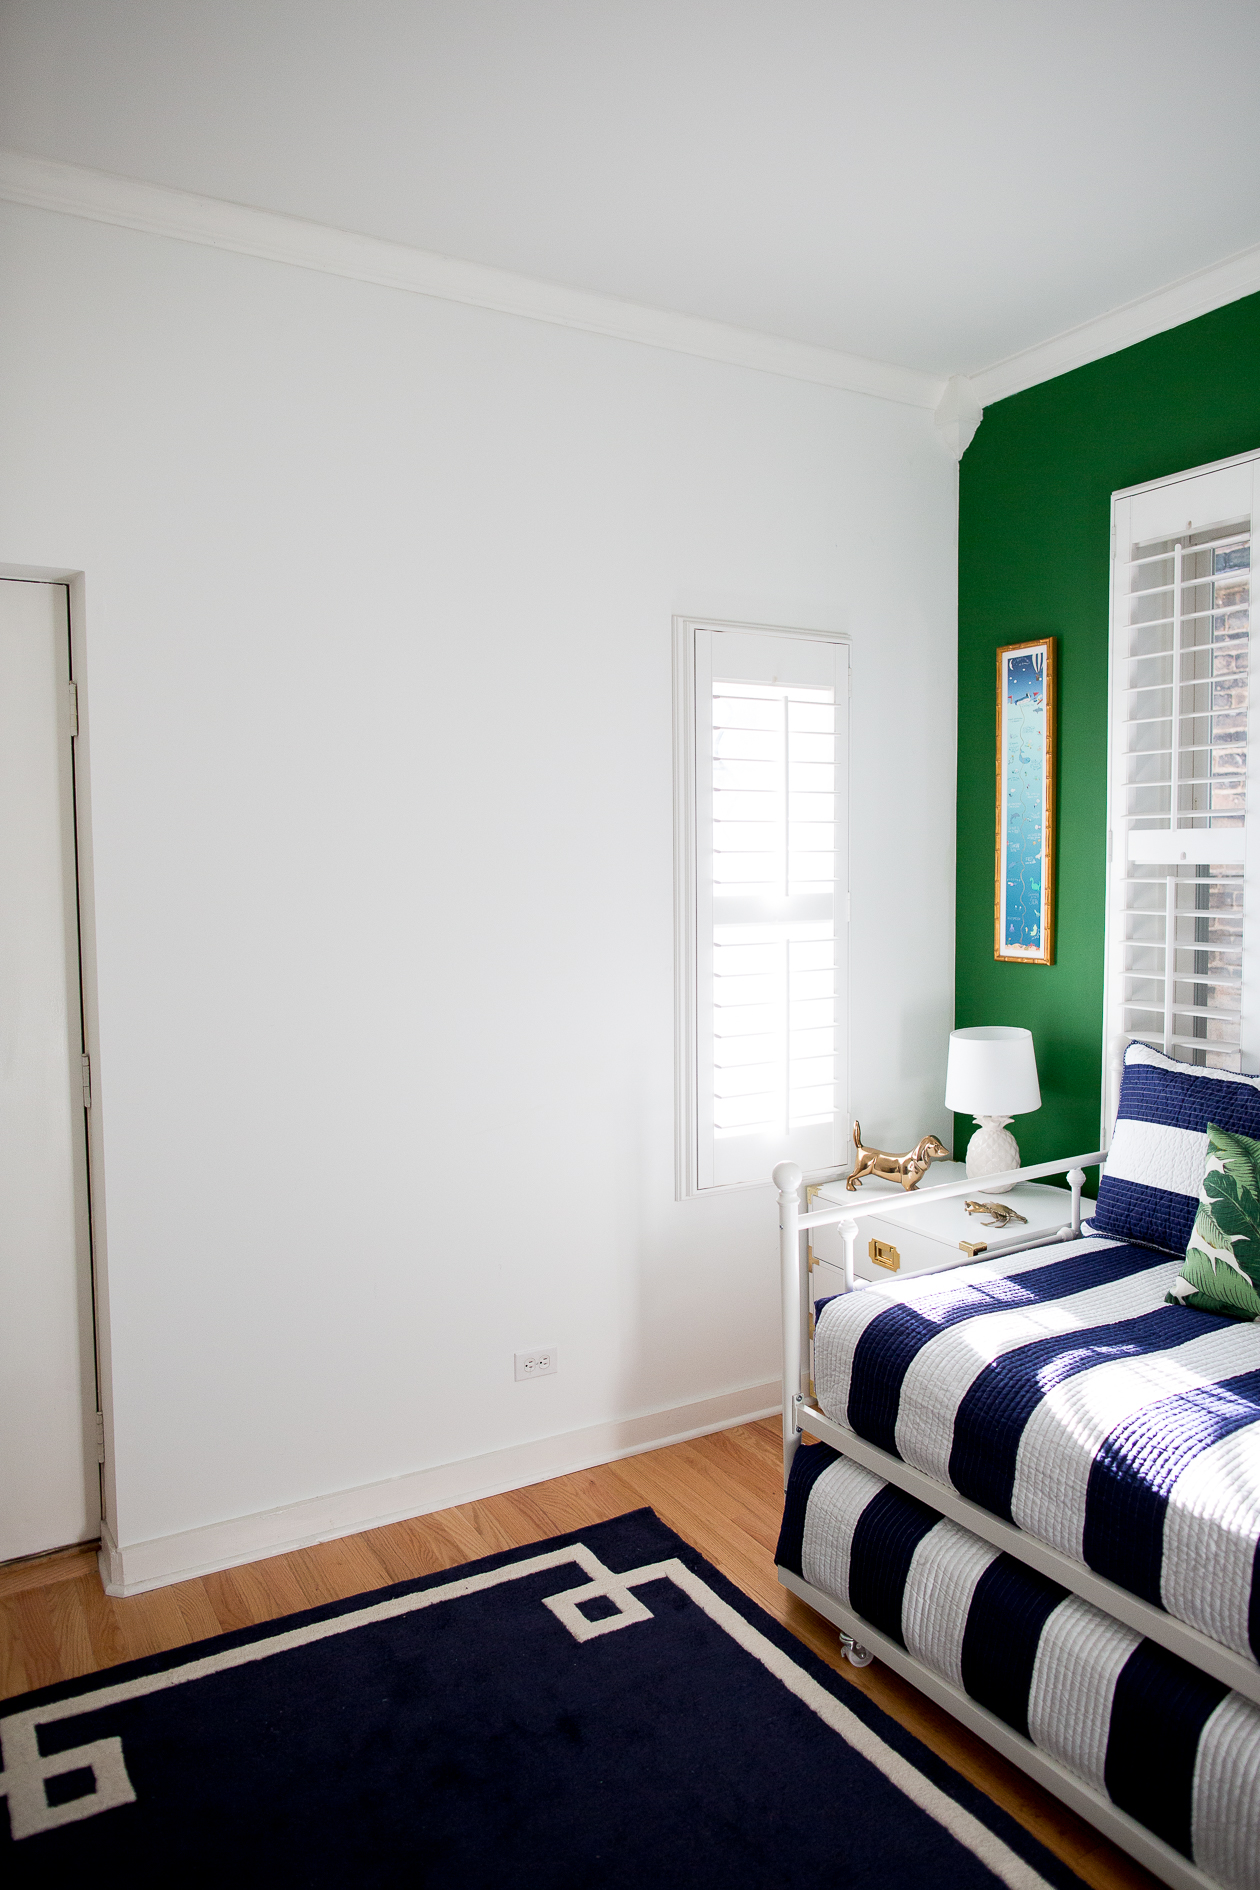 preppy-green-walls-gold-frames-1